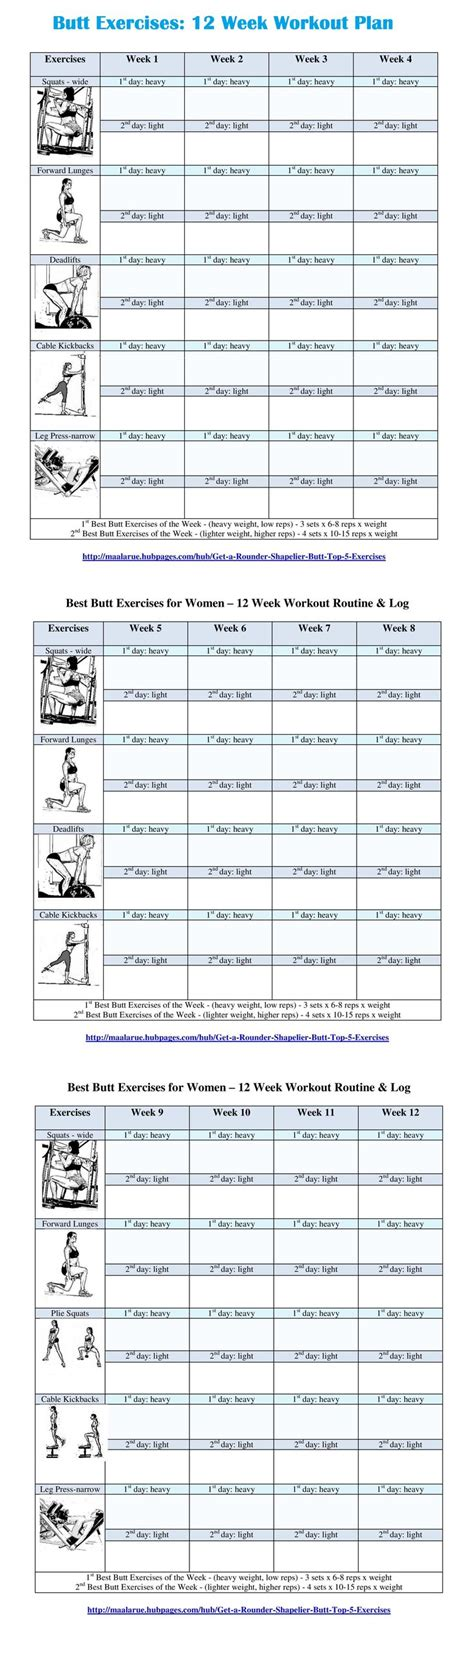 printable workout plan for the gym 12 week butt exercise routine free pdf for download or